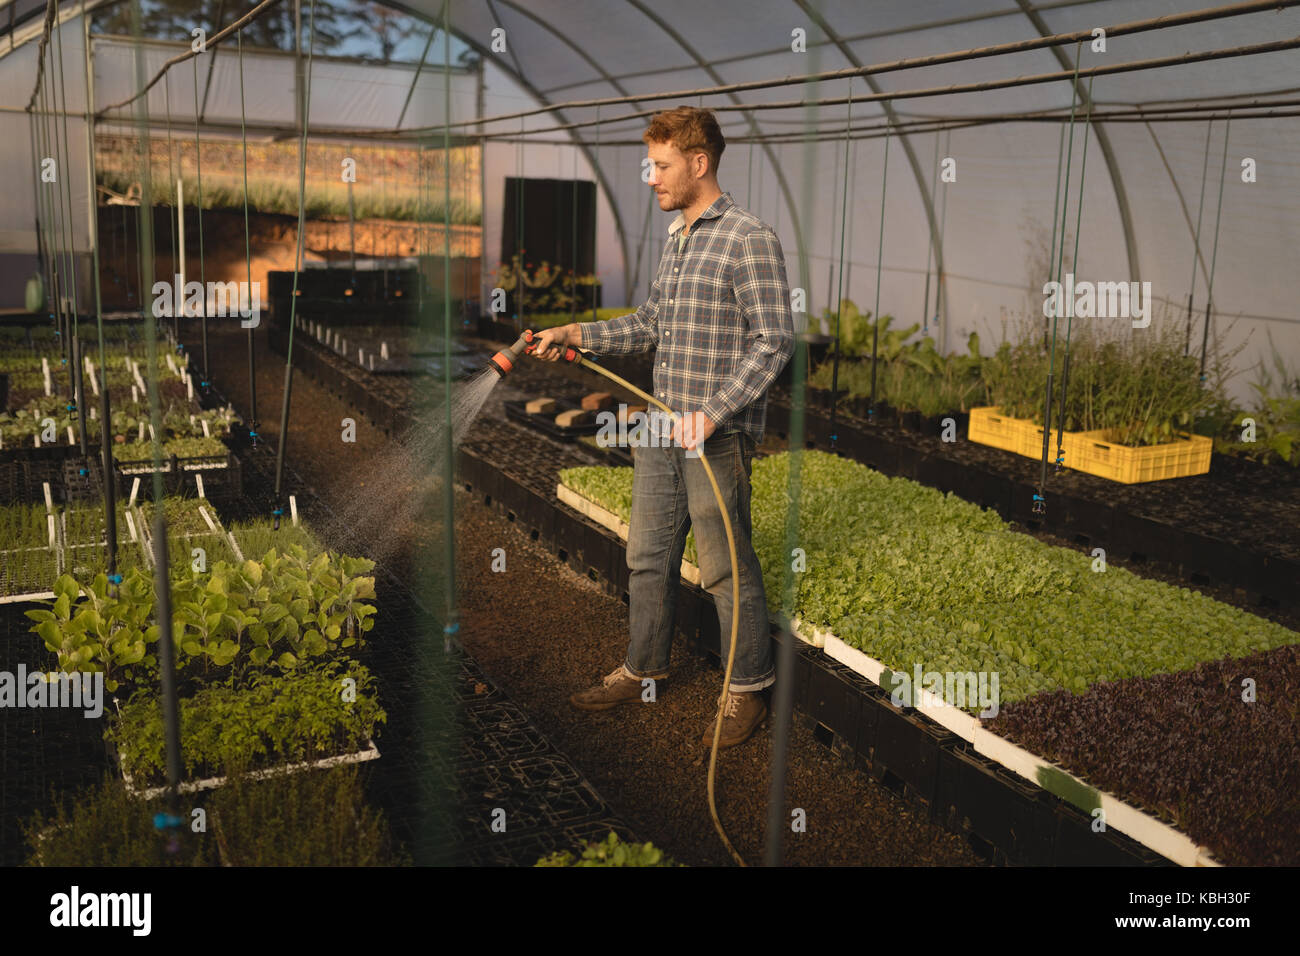 Young farmer watering plants in greenhouse Stock Photo